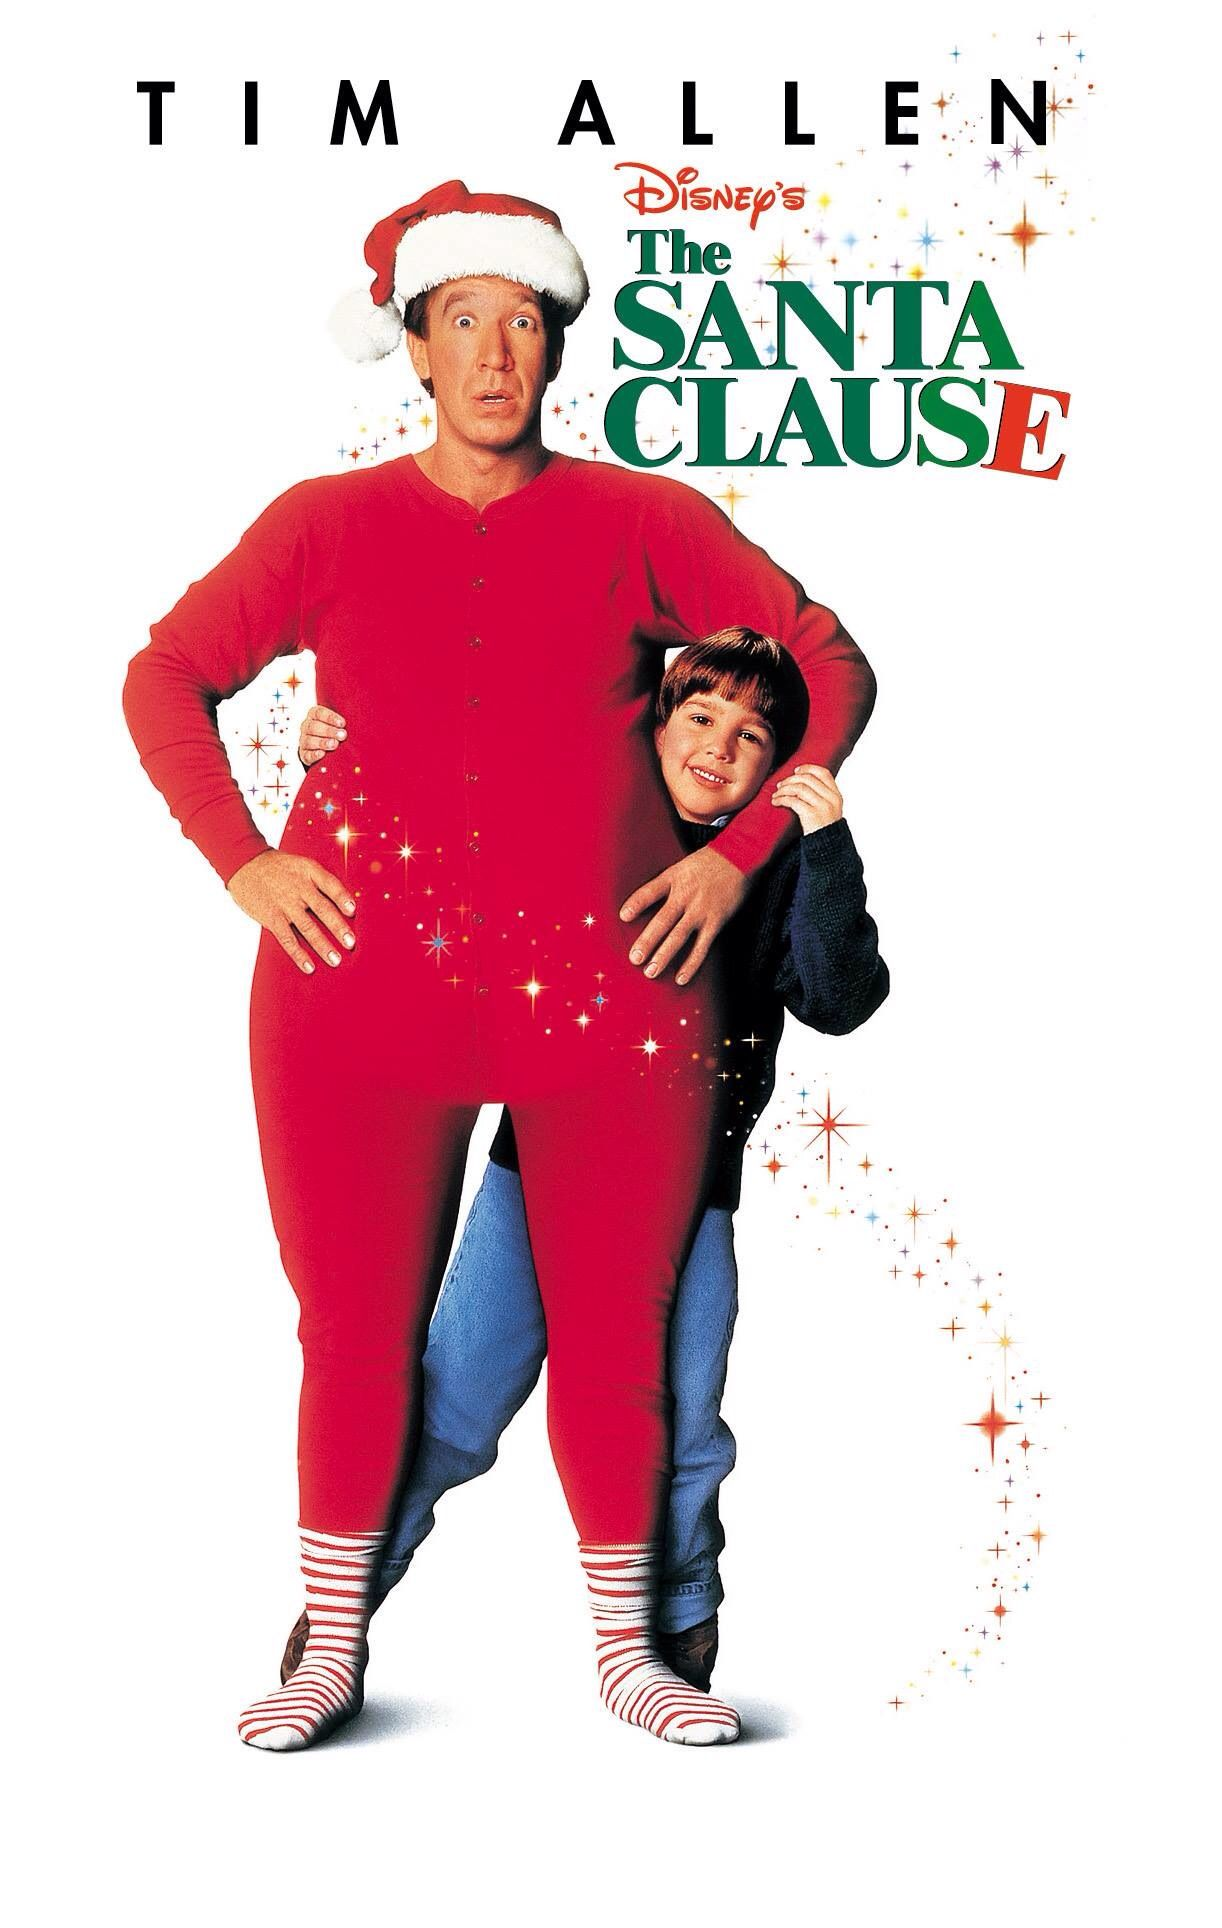 Classic Tim Allen At His Christmas Best Best Christmas Movies Christmas Movies Christmas Movies List